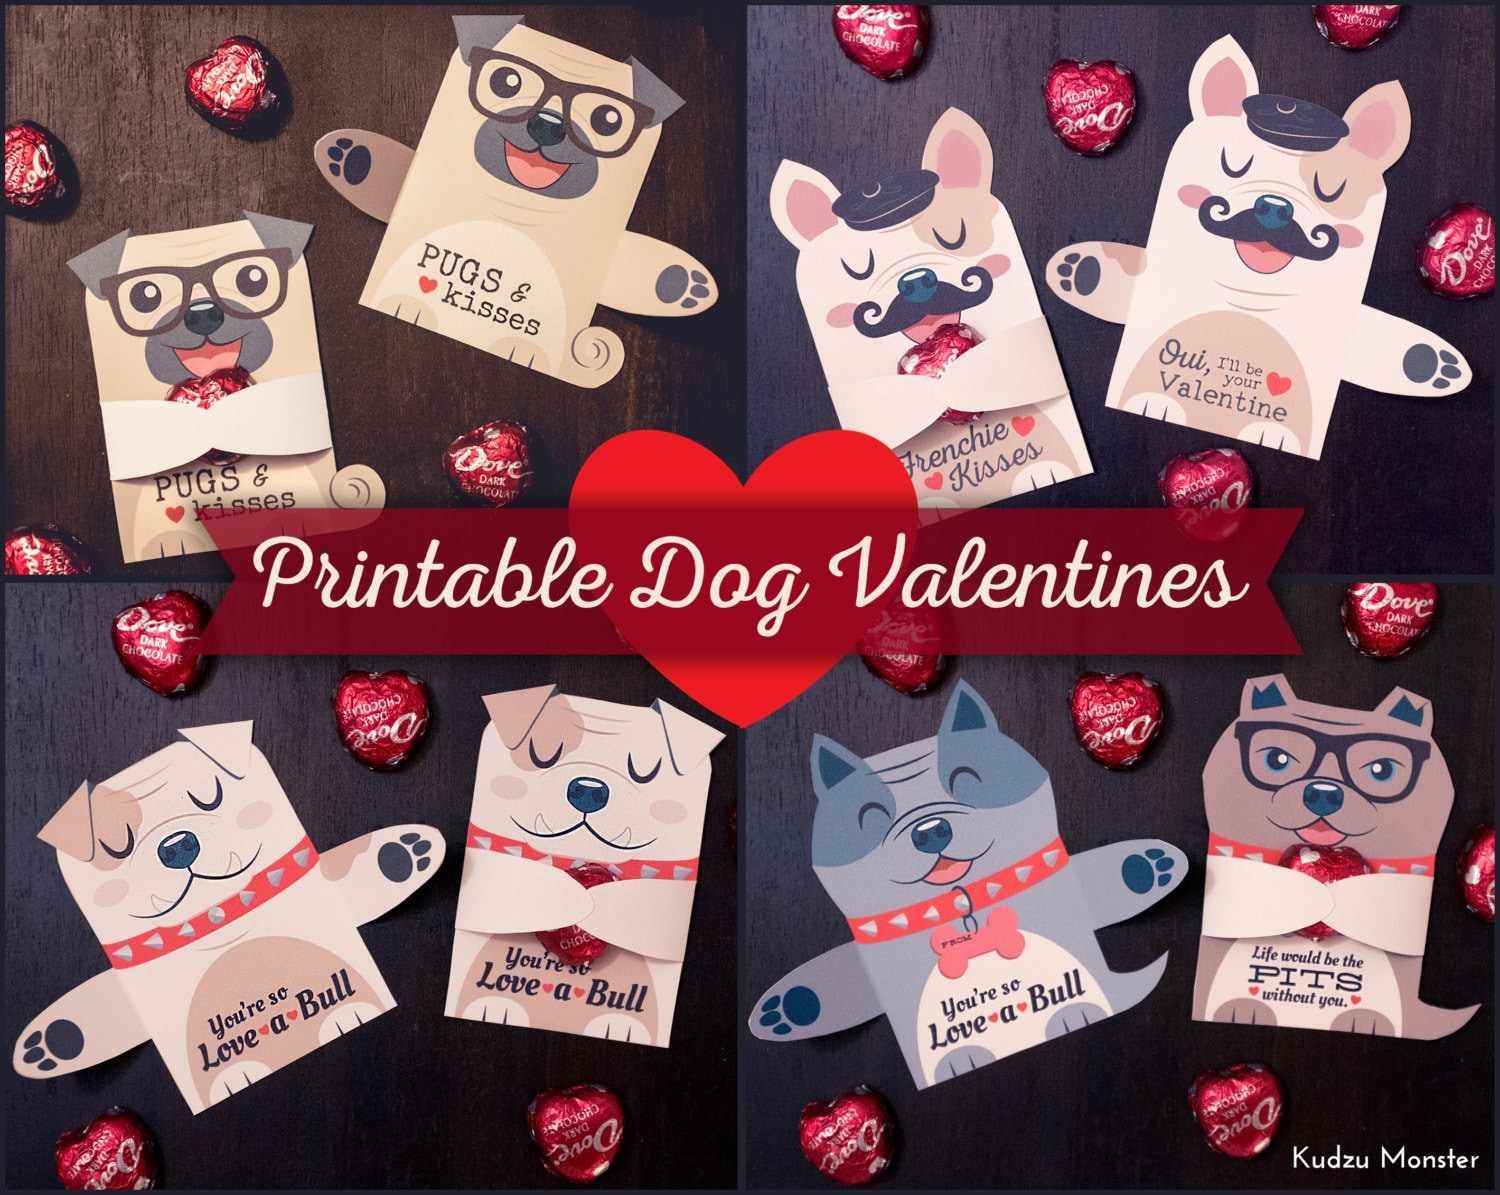 Dog Valentines Candy Huggers Printable Puppy Valentine cards | Etsy